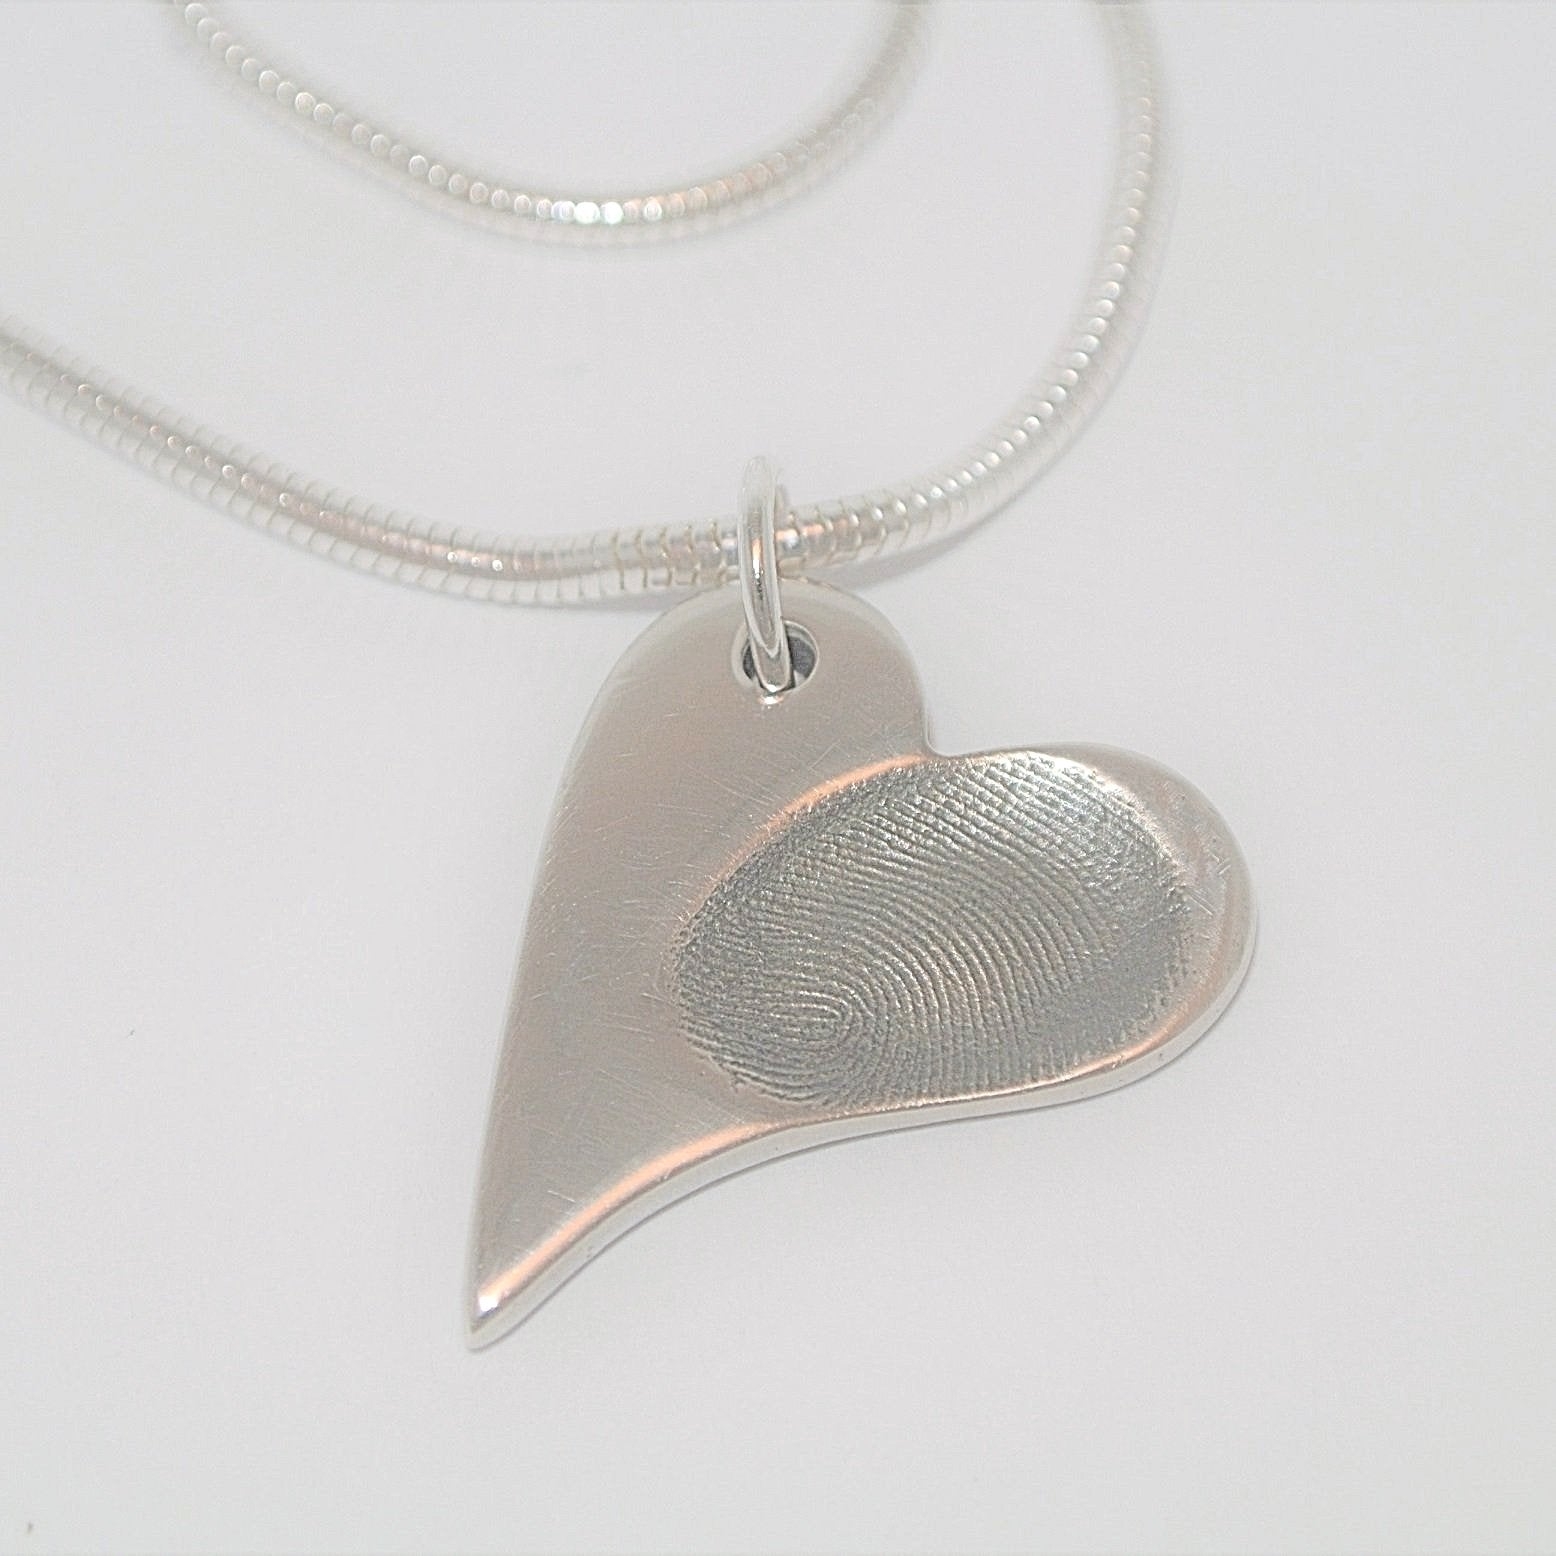 Wavy Heart Fingerprint Necklace Sterling Silver Fingerprint Jewellery